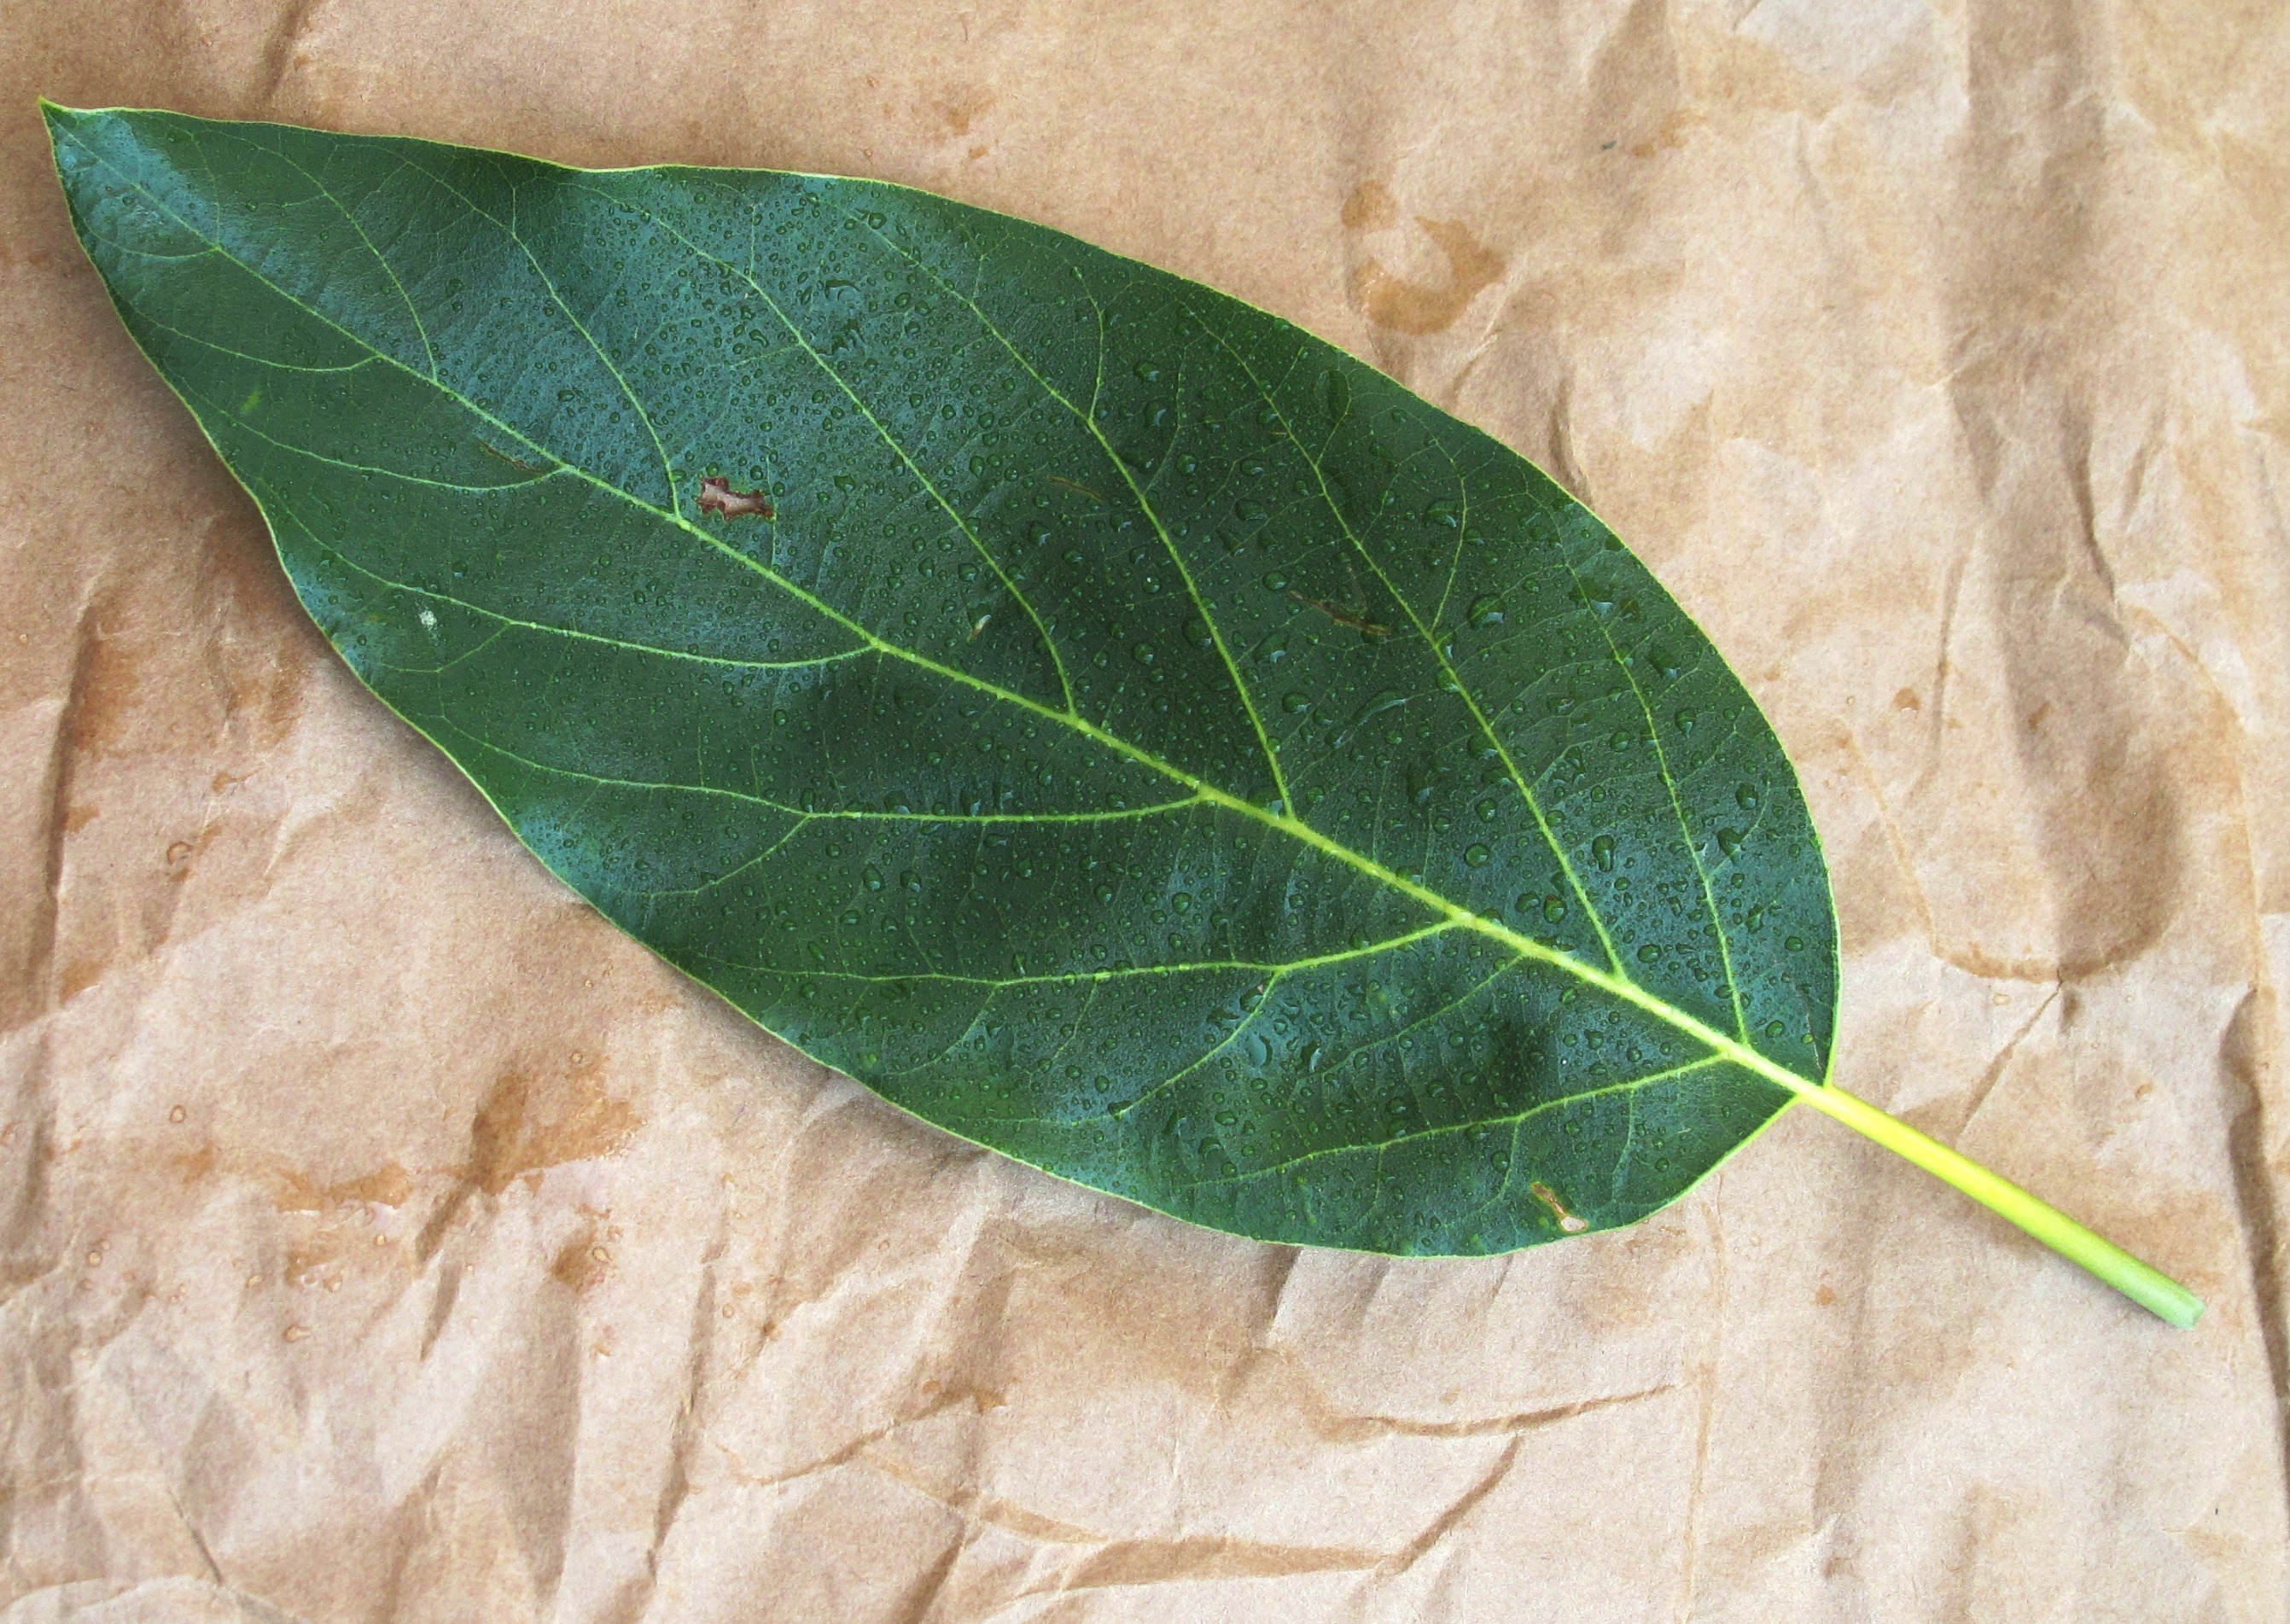 Leaf Morphology | Obovate Designs™